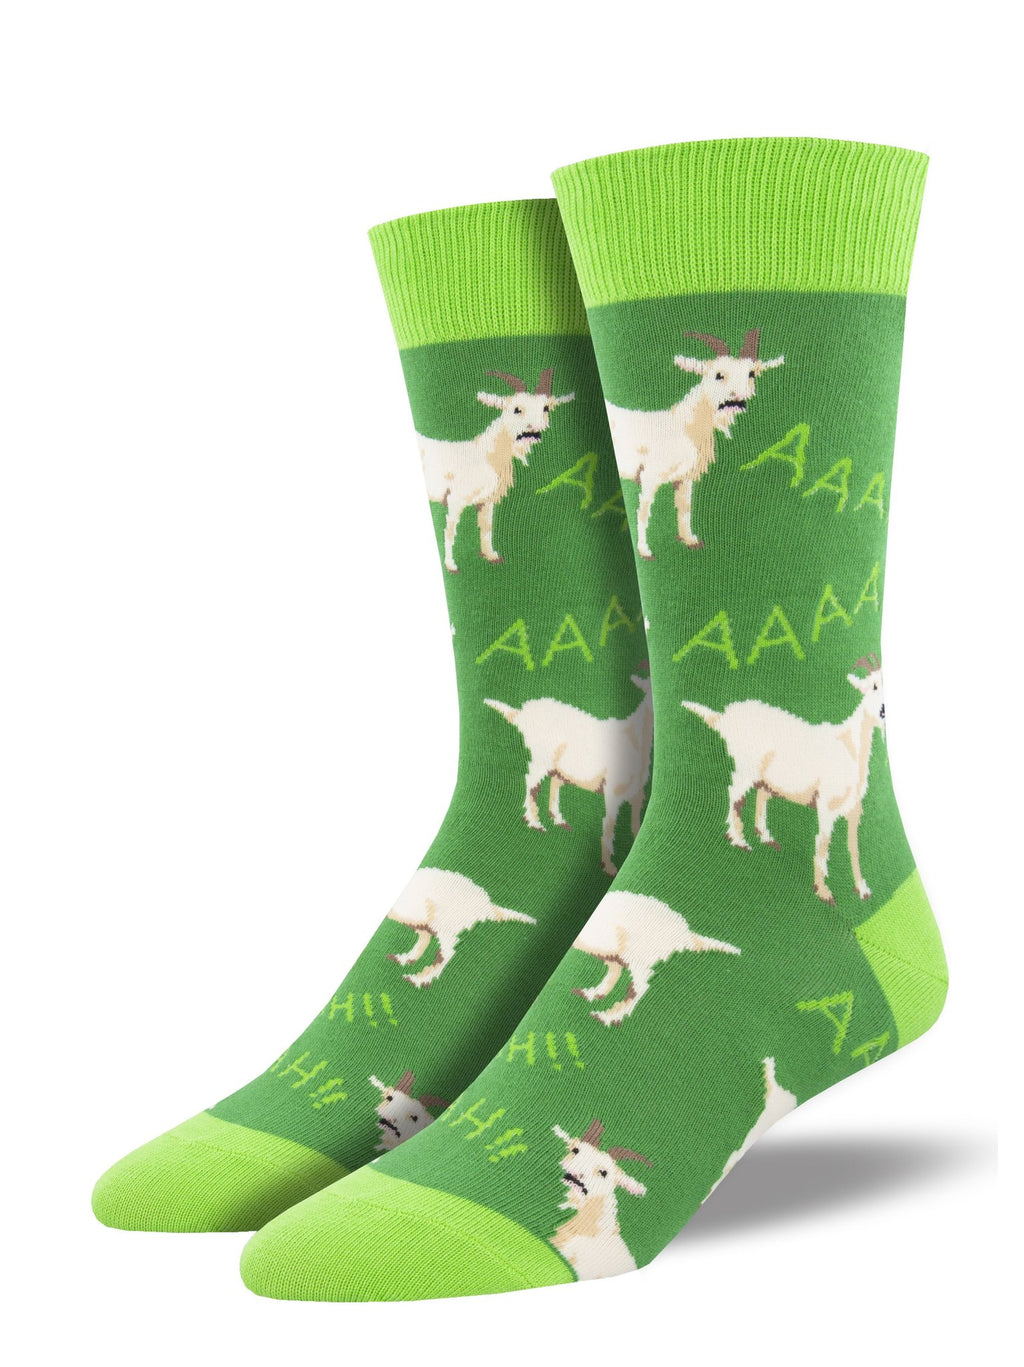 Screaming Goats Green Men's Socks